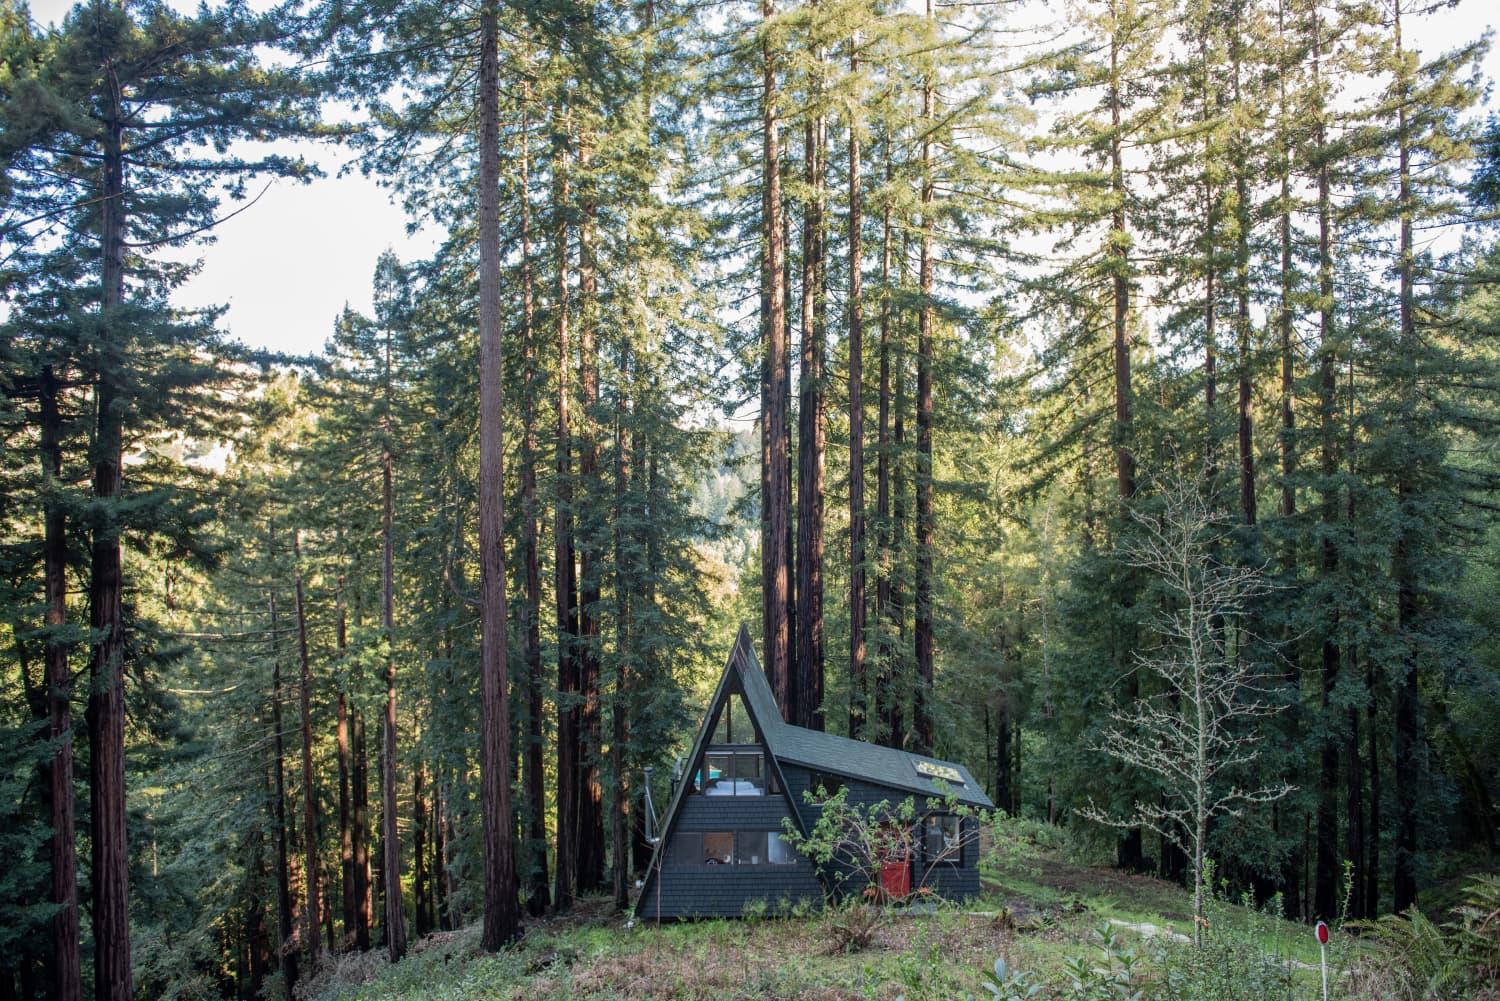 This California A-Frame Cabin Is Truly an Adorable Home in the Woods